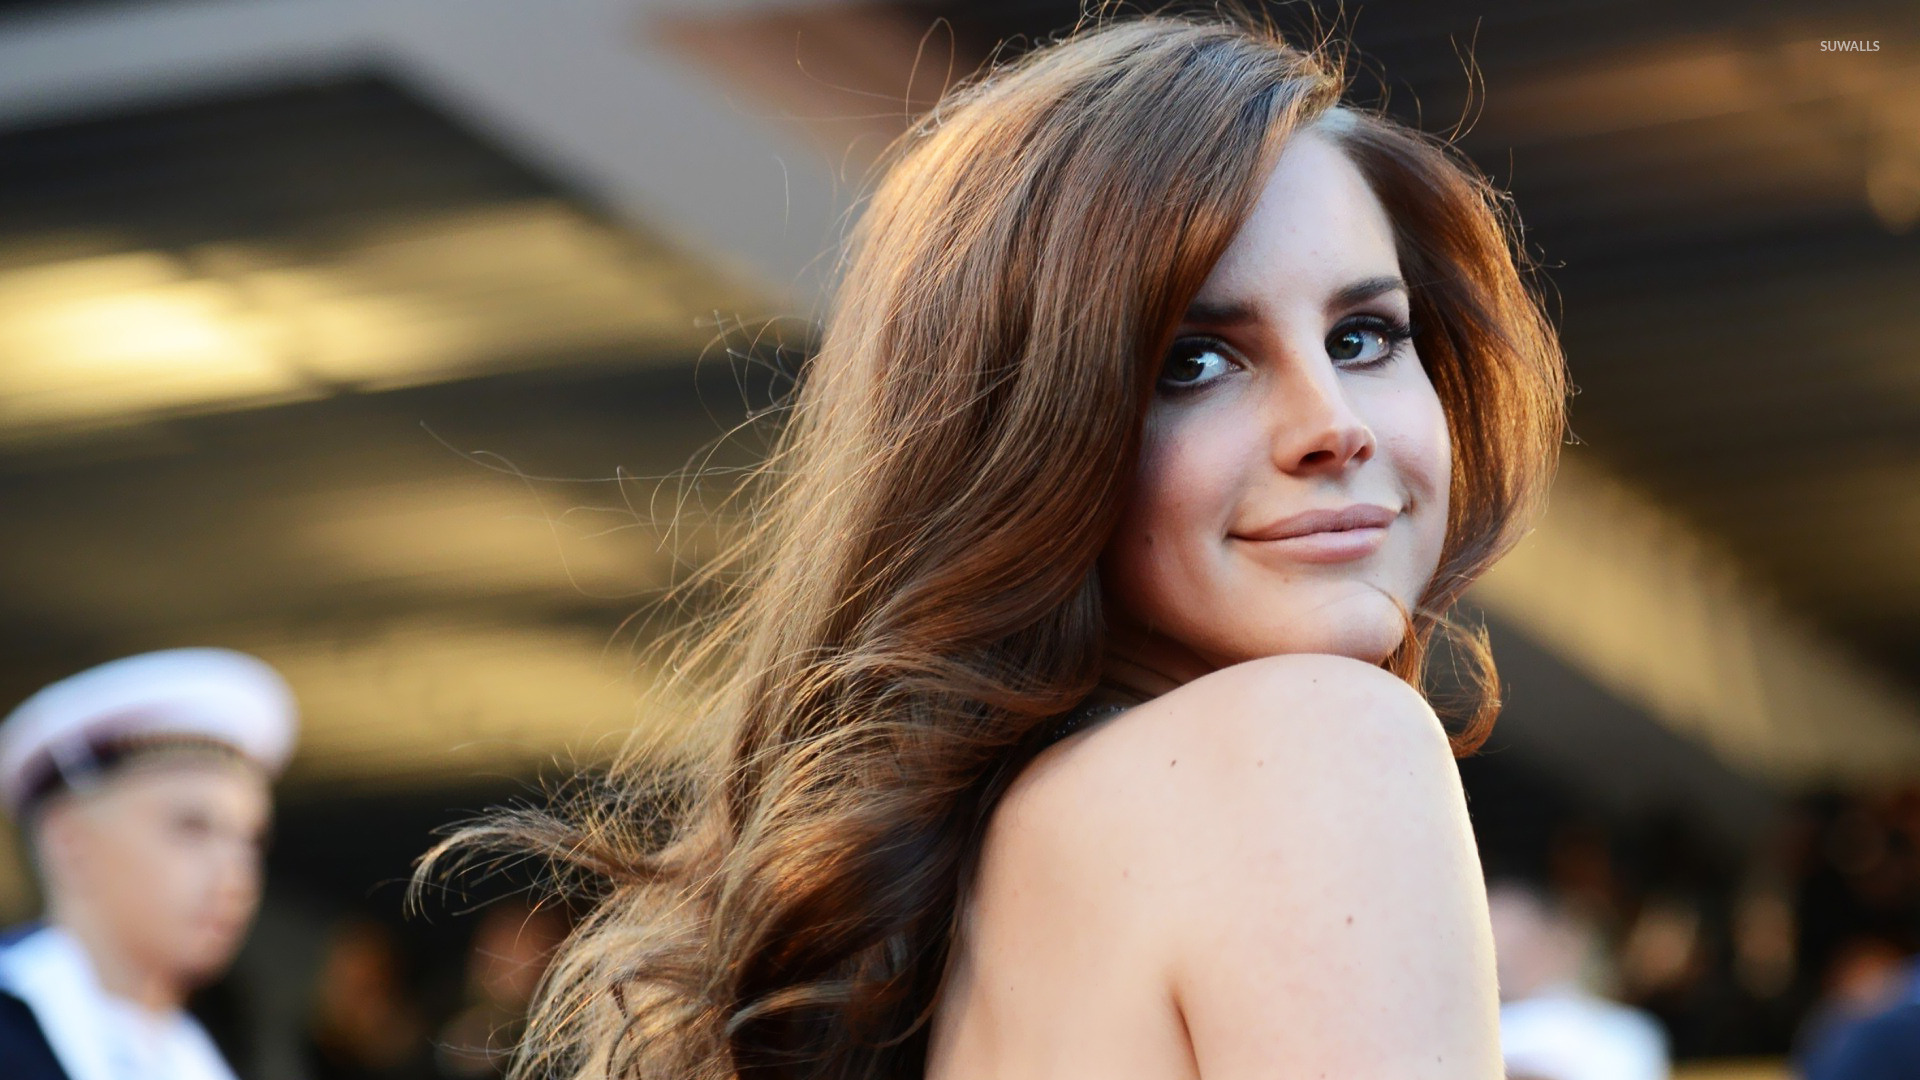 Lana Del Rey 2 Wallpaper Celebrity Wallpapers 17028